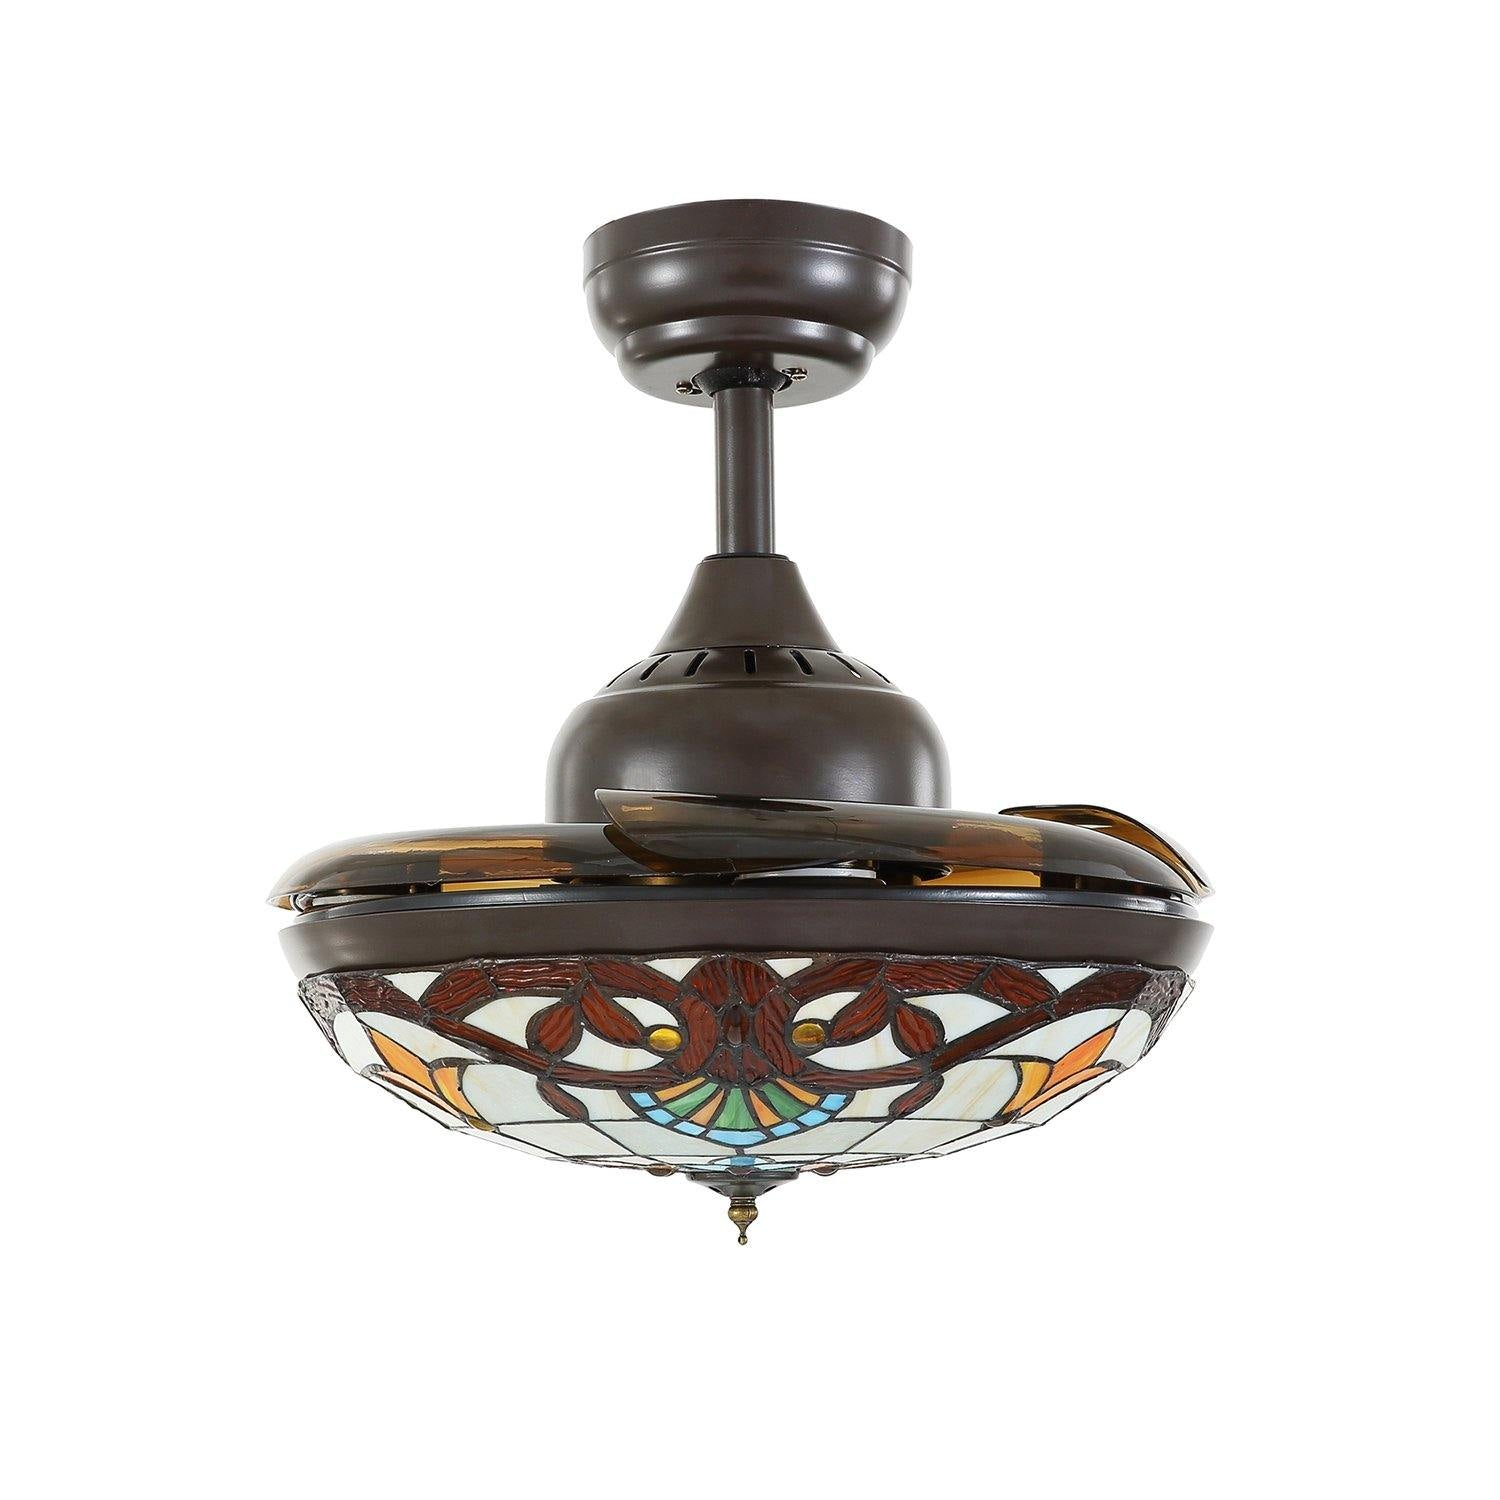 Rustic Retractable Ceiling Fan Chandelier With Dimmable Lights 7pm Lighting